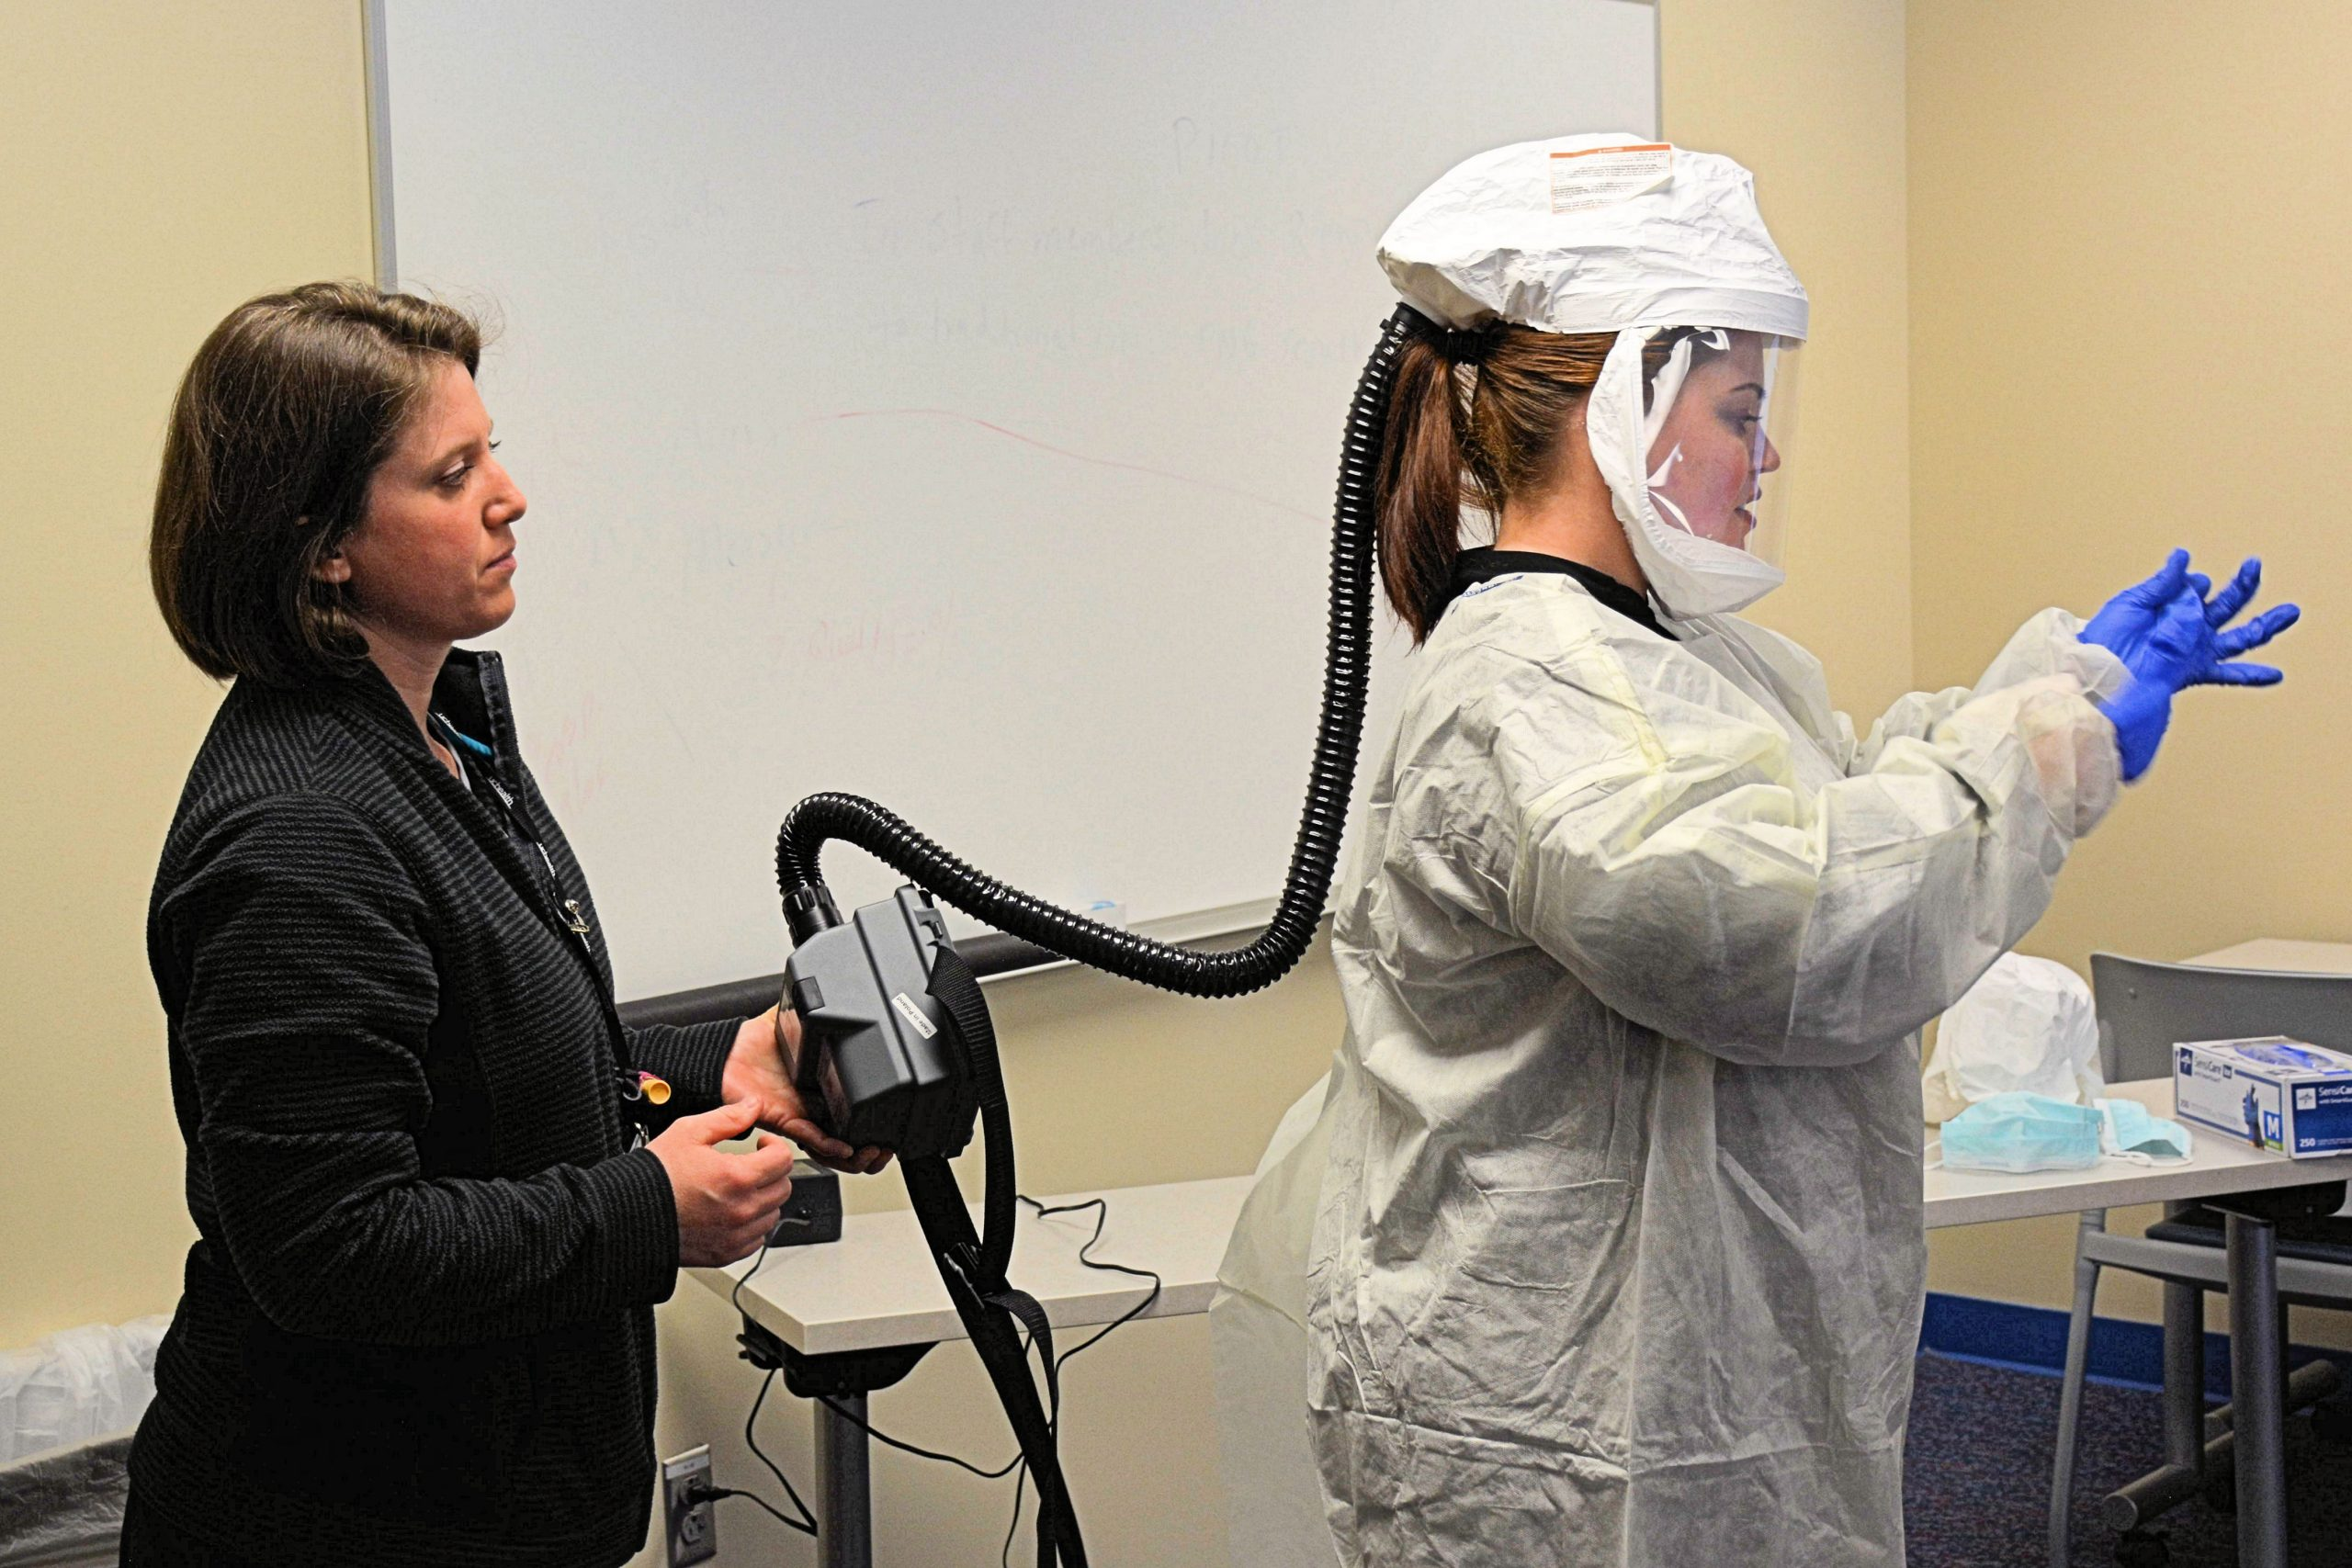 UCHealth trains for the new role of PPE specialist